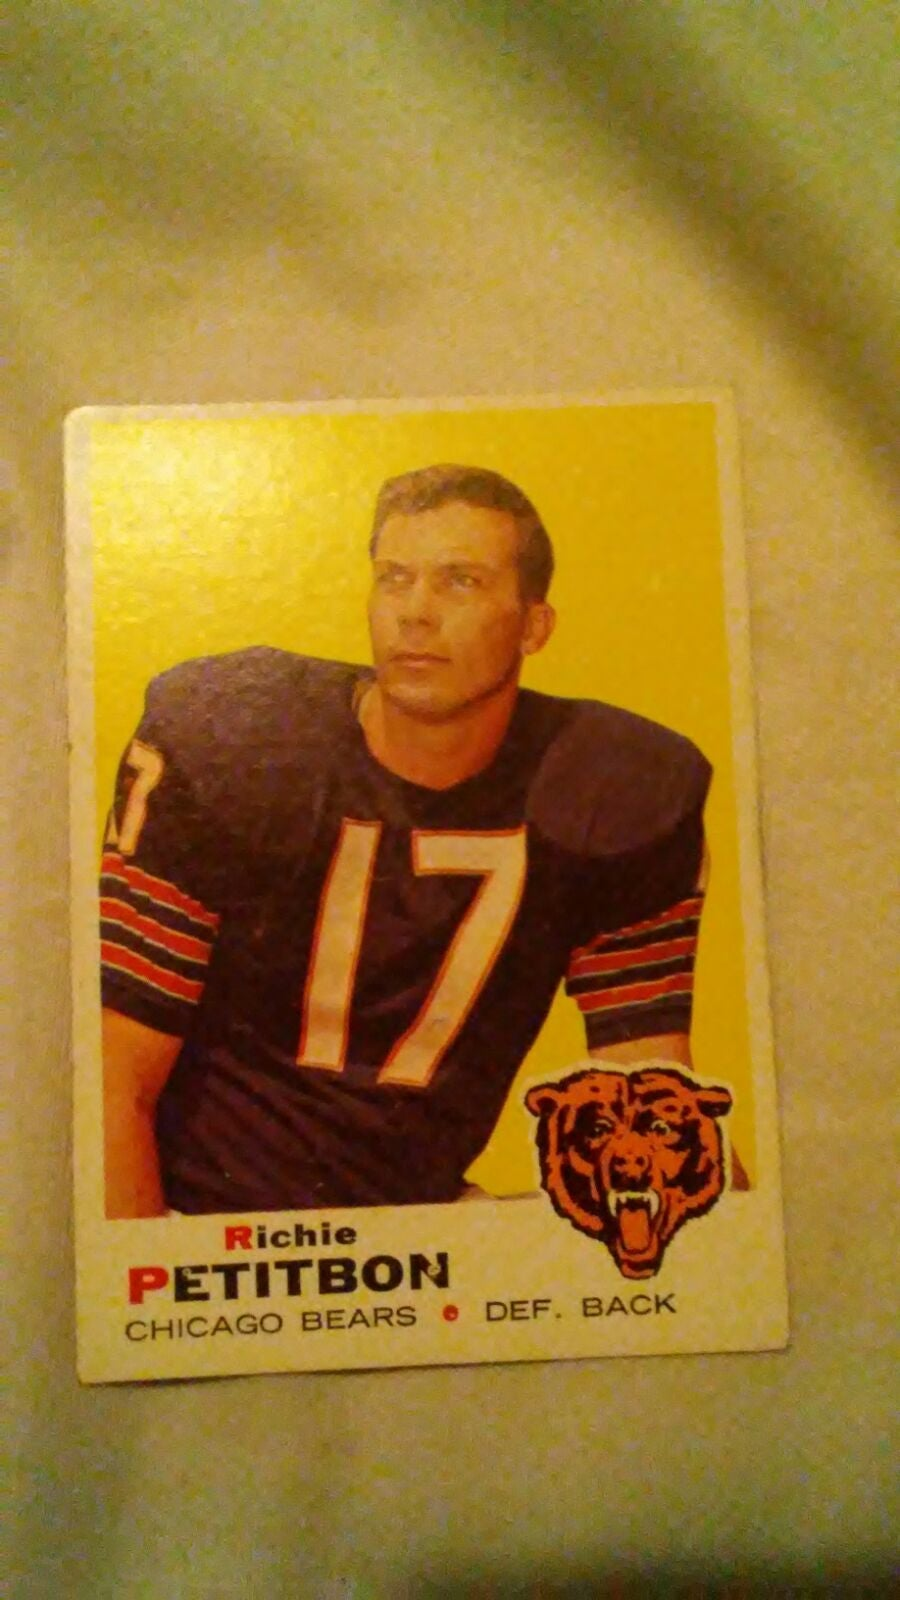 1969 Richie Petitbon football card